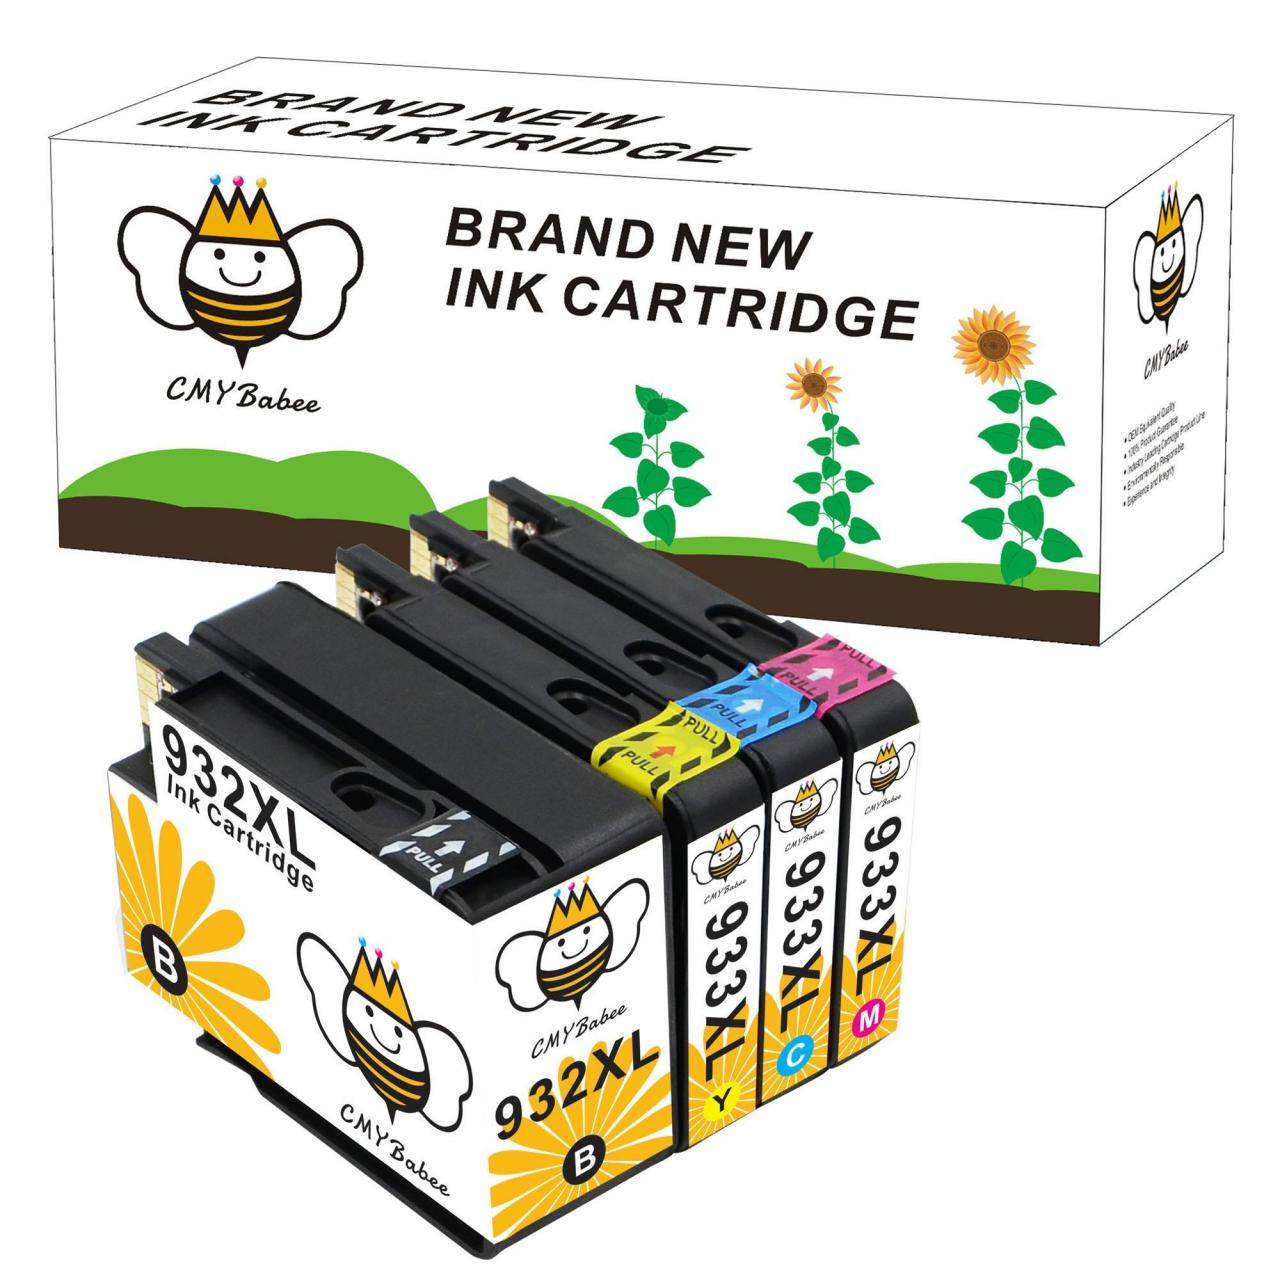 Quality Ink Cartridges 4PK Remanufactured Ink Cartridge for HP 932XL 933XL 4Pk - OfficeJet 6100 6600 6700 wholesale